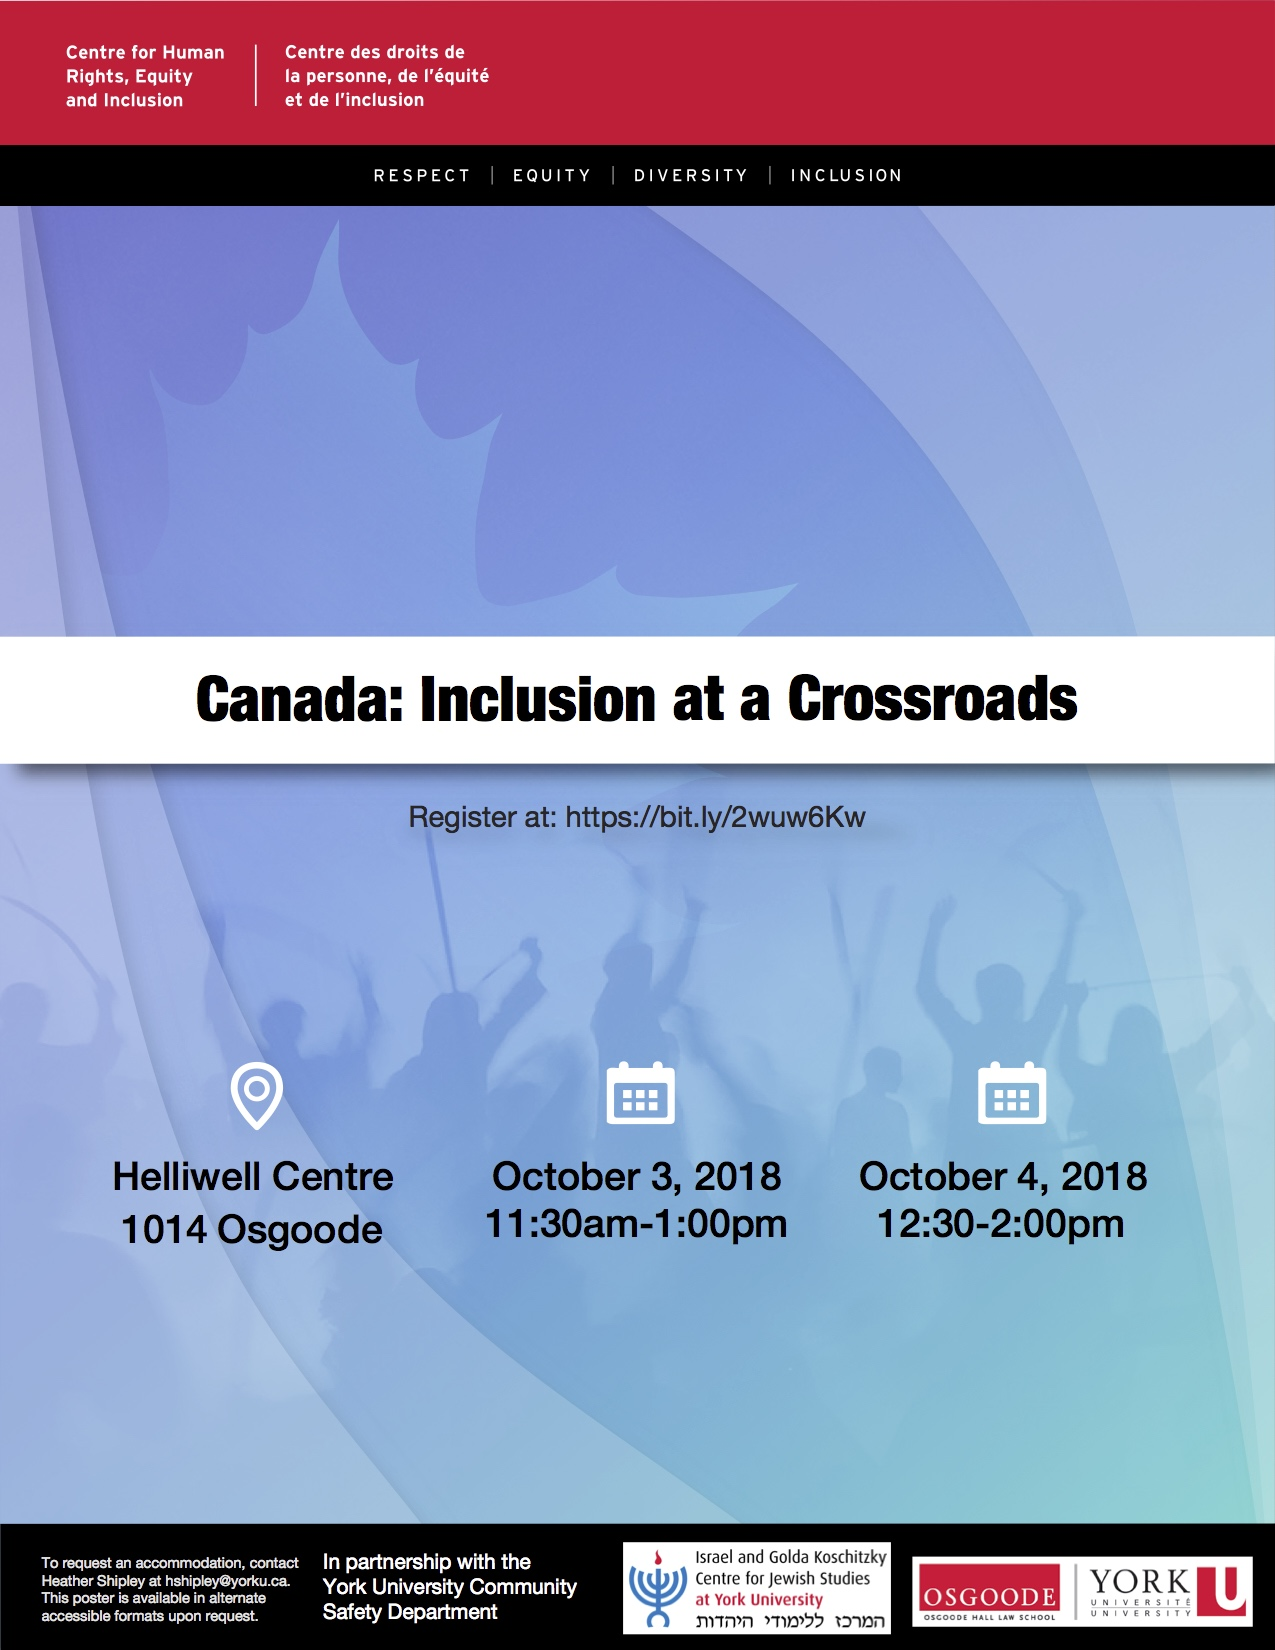 Canada: Inclusion at a Crossroads (October 4)